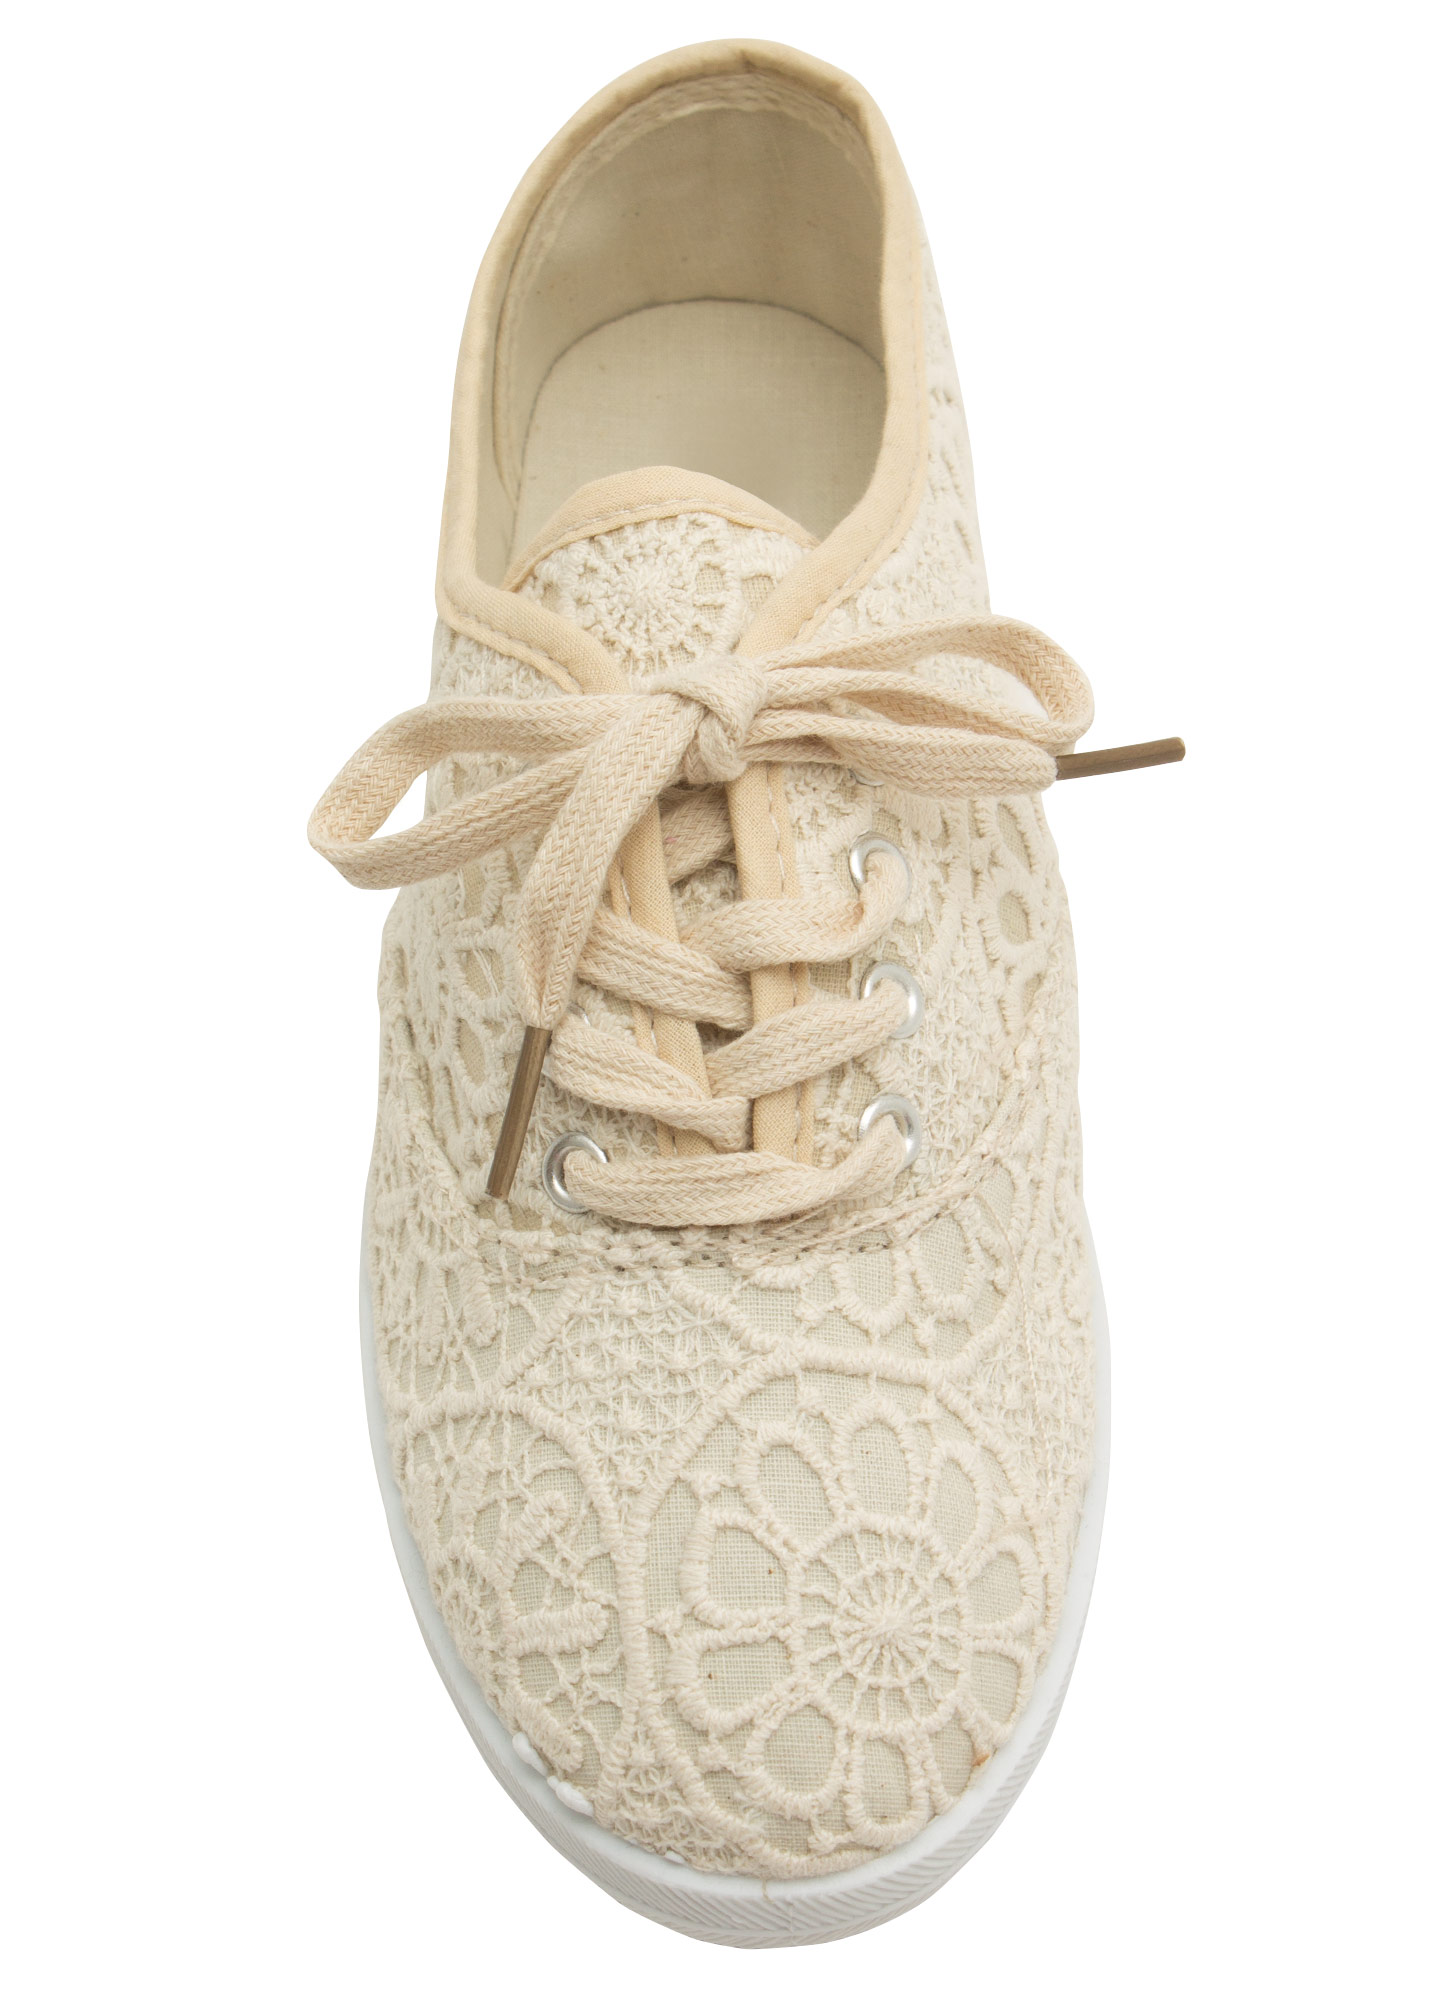 Embroidered Sneakers BEIGE